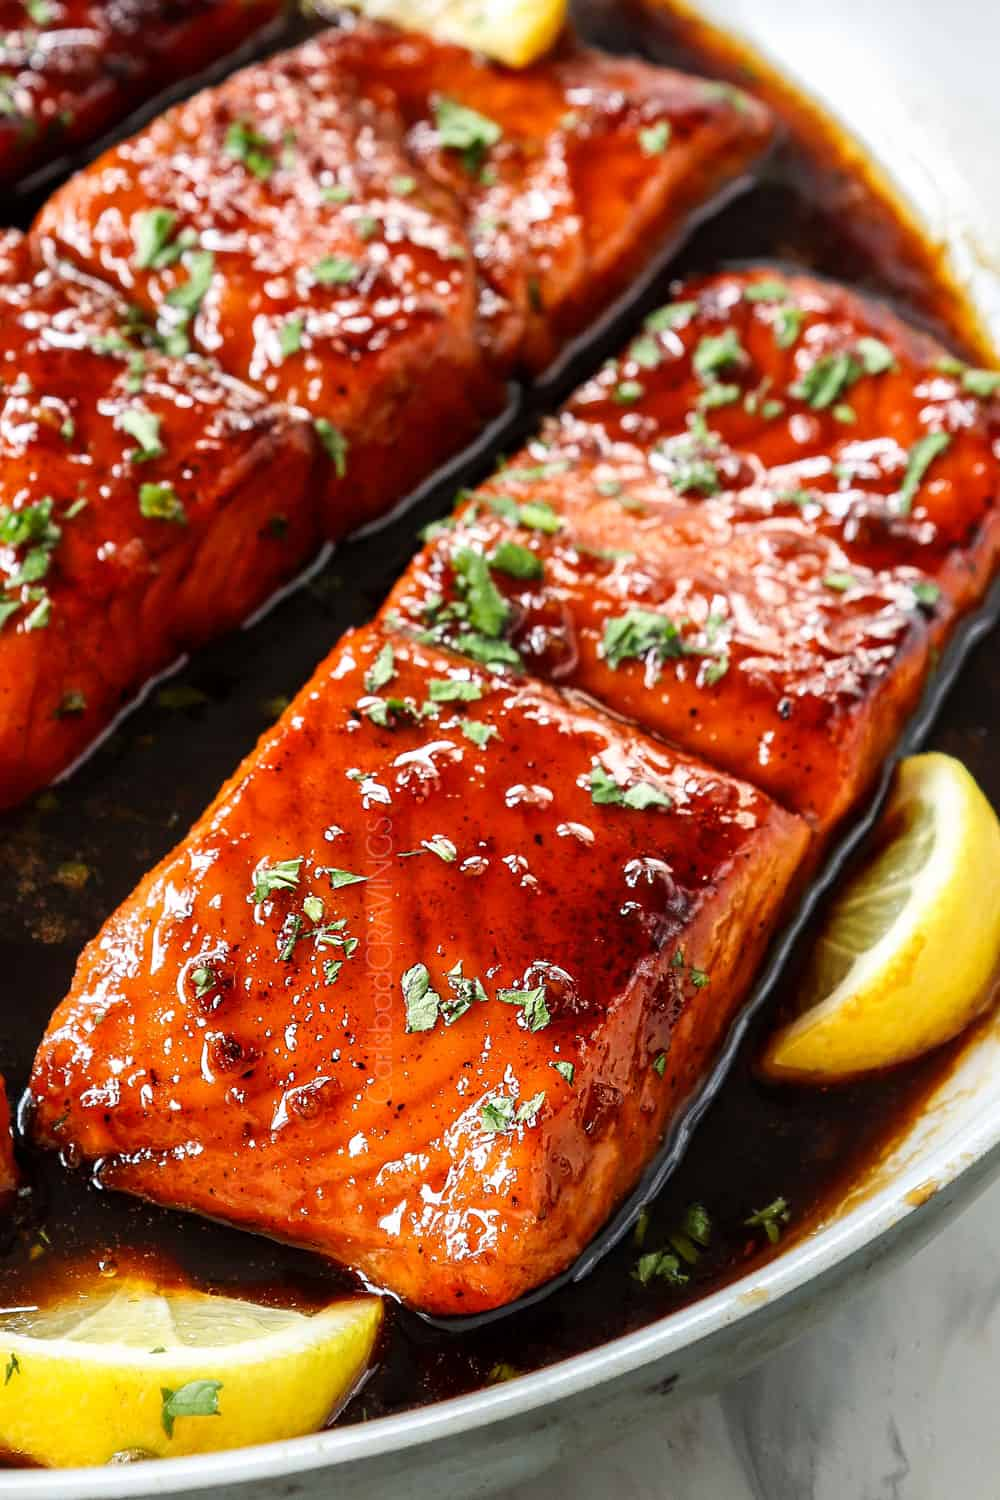 up close of honey garlic glazed salmon showing how juicy it is